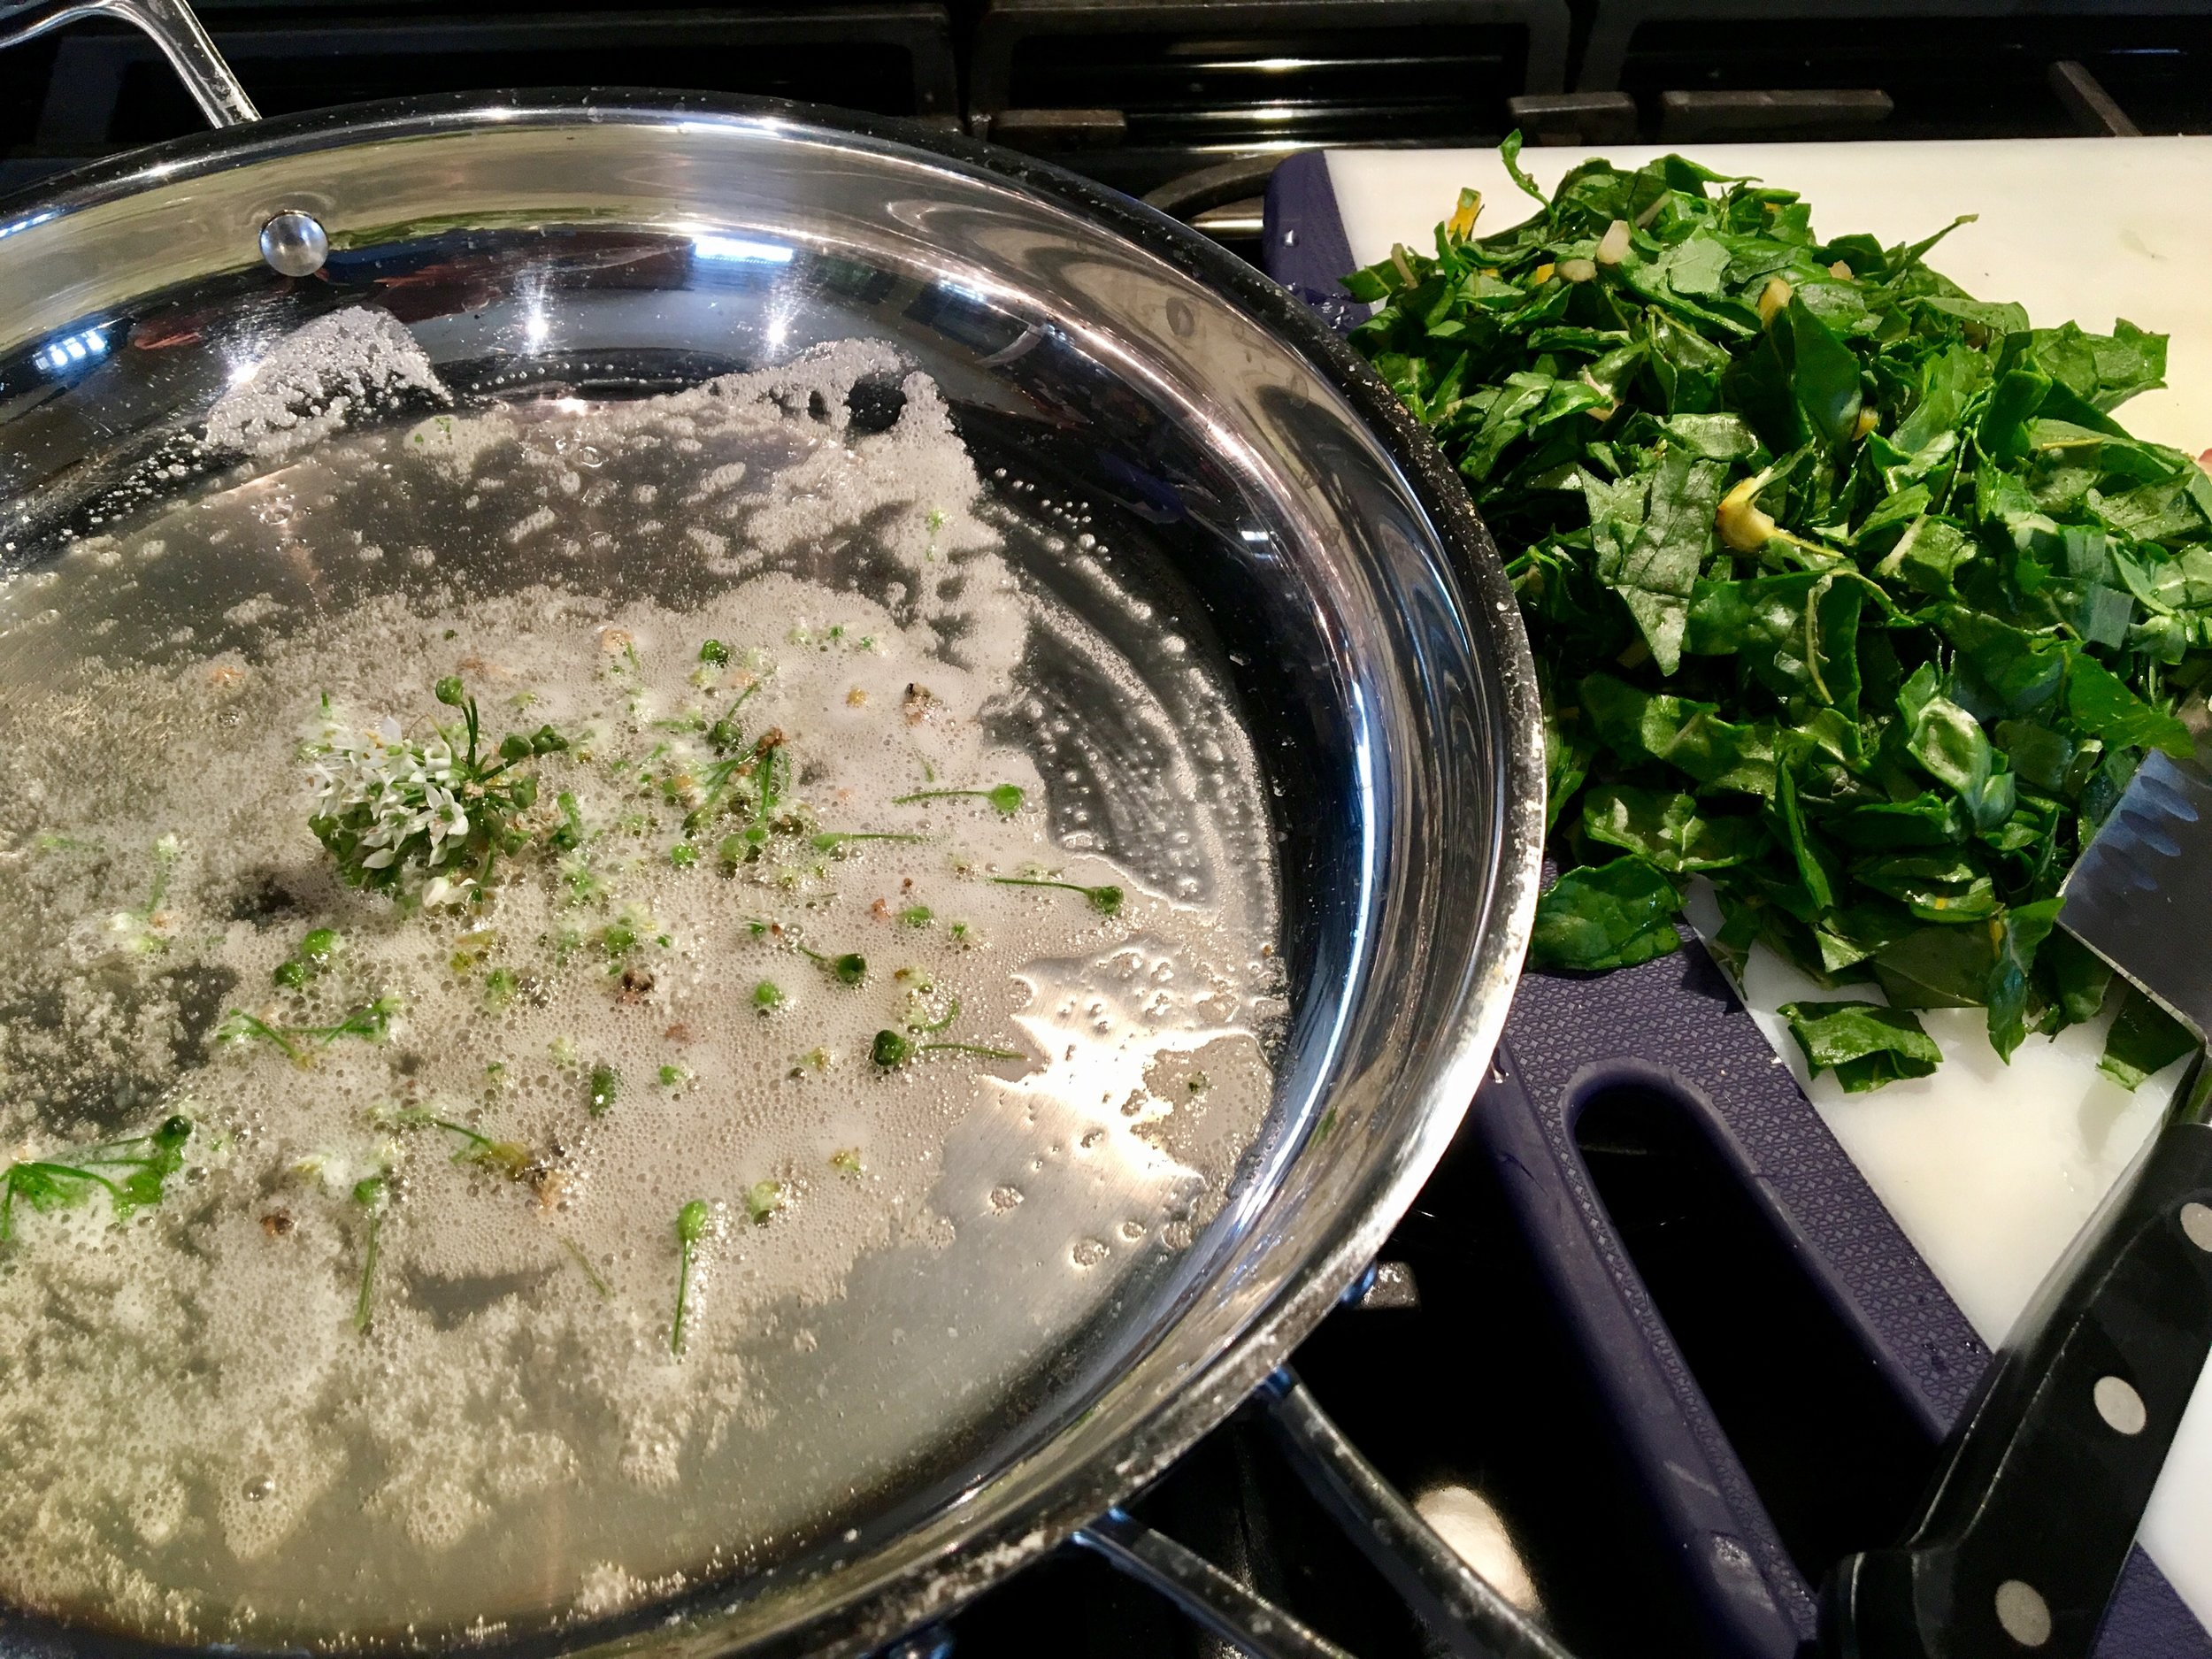 warming the garlic-chive buds and ready to cook the swiss chard.